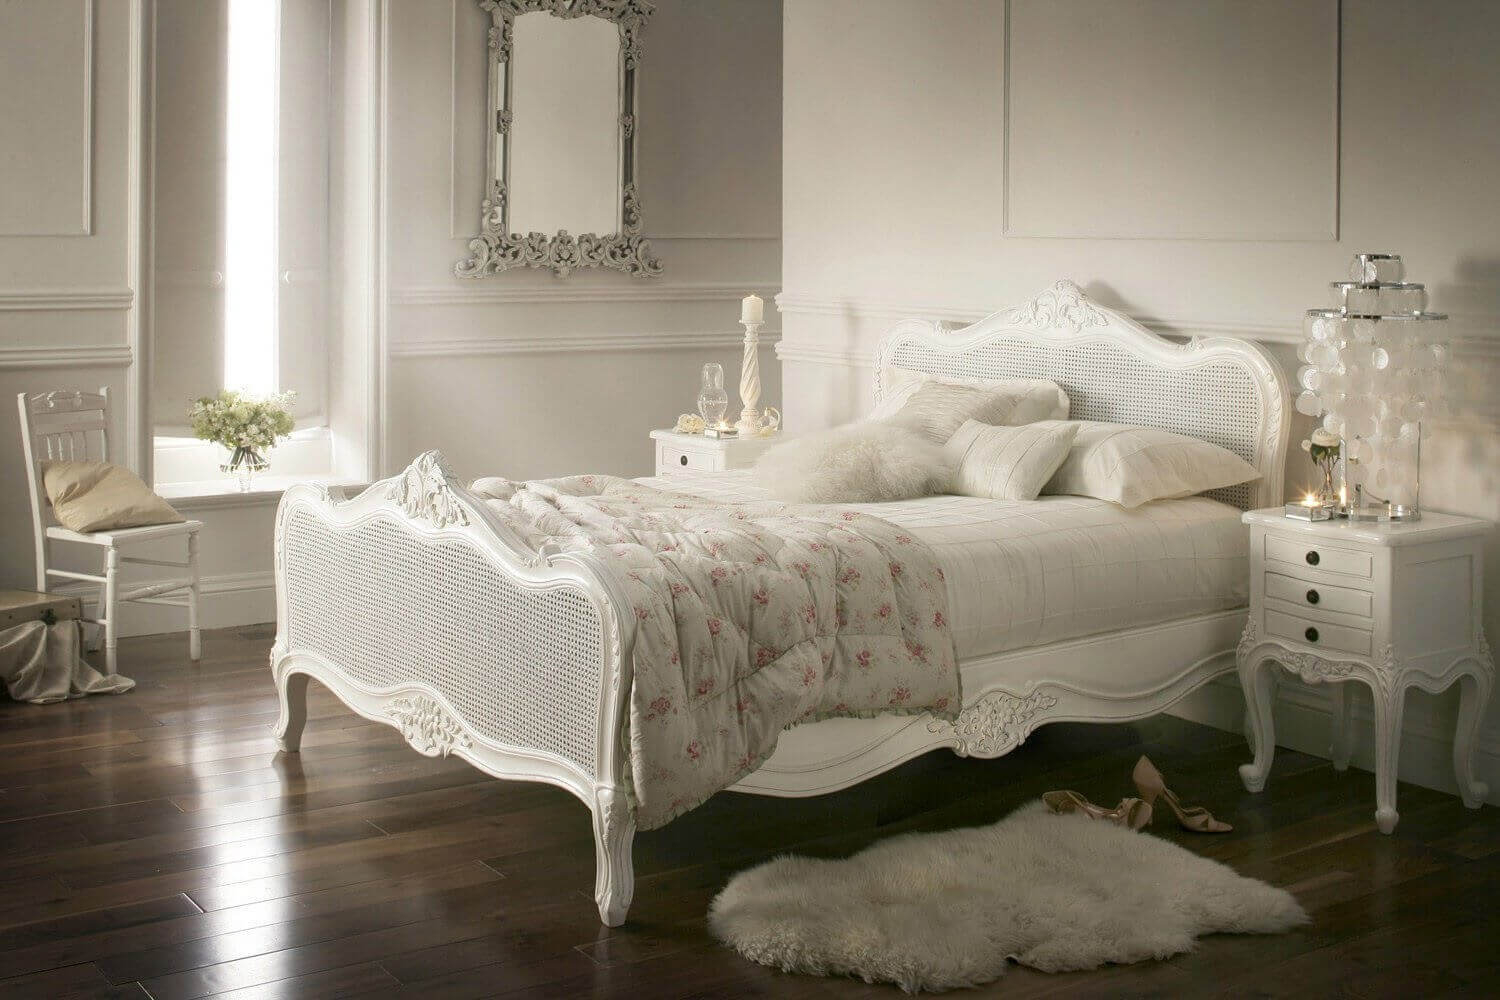 Modern 33 Best Vintage Bedroom Decor Ideas And Designs For 2018 inside Vintage Bedroom